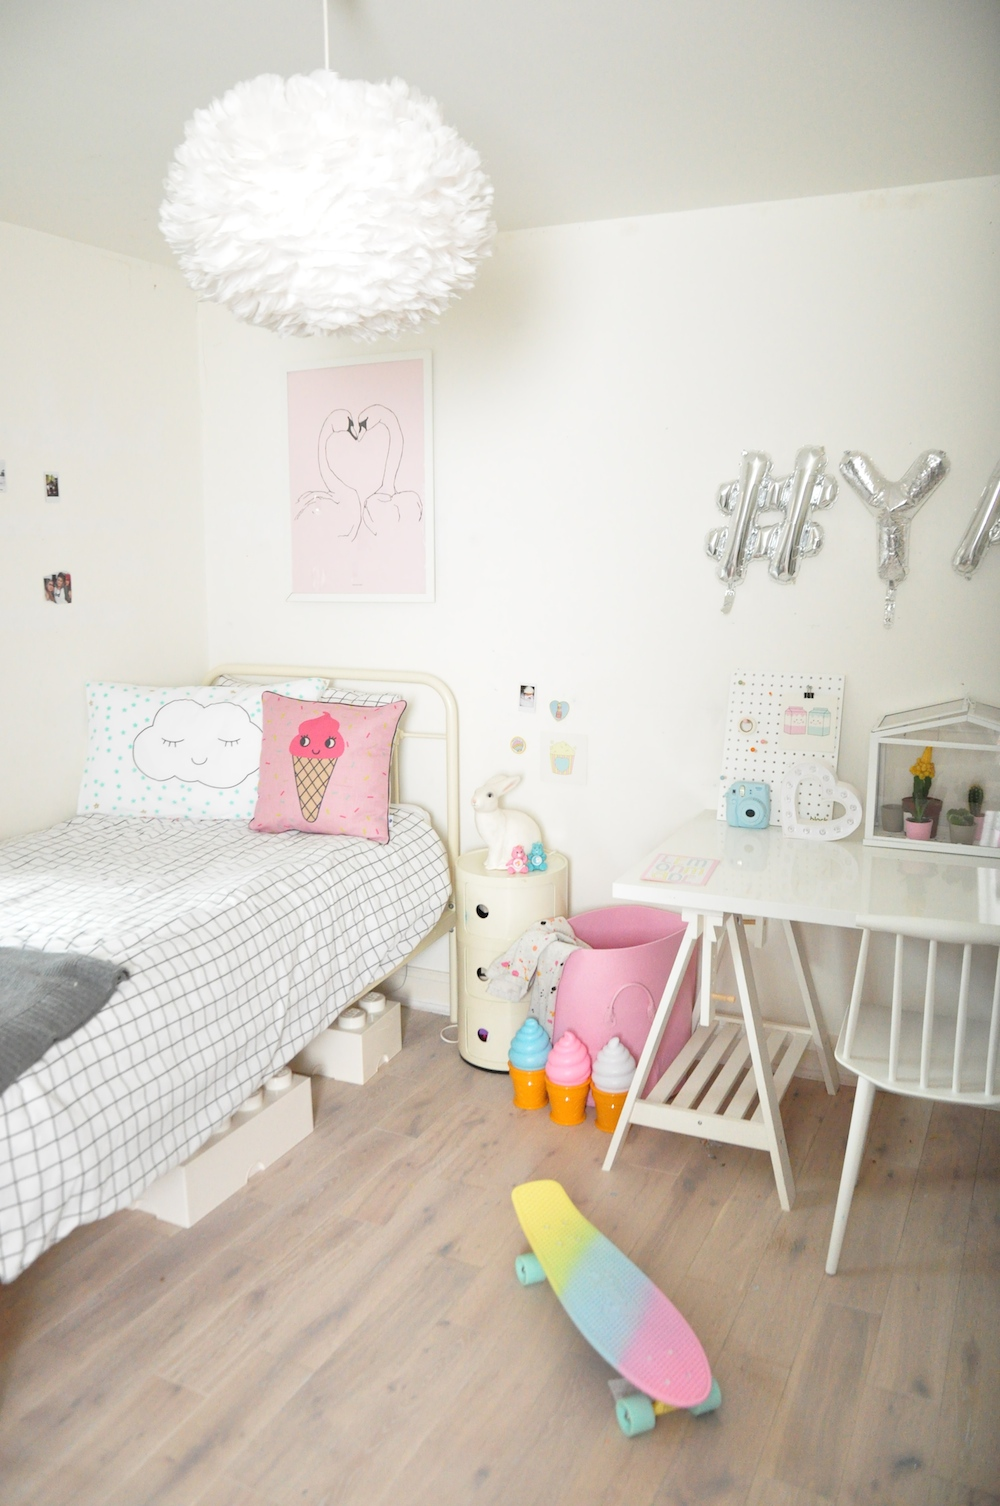 Atelier_Child_kids_room_ice_Cream